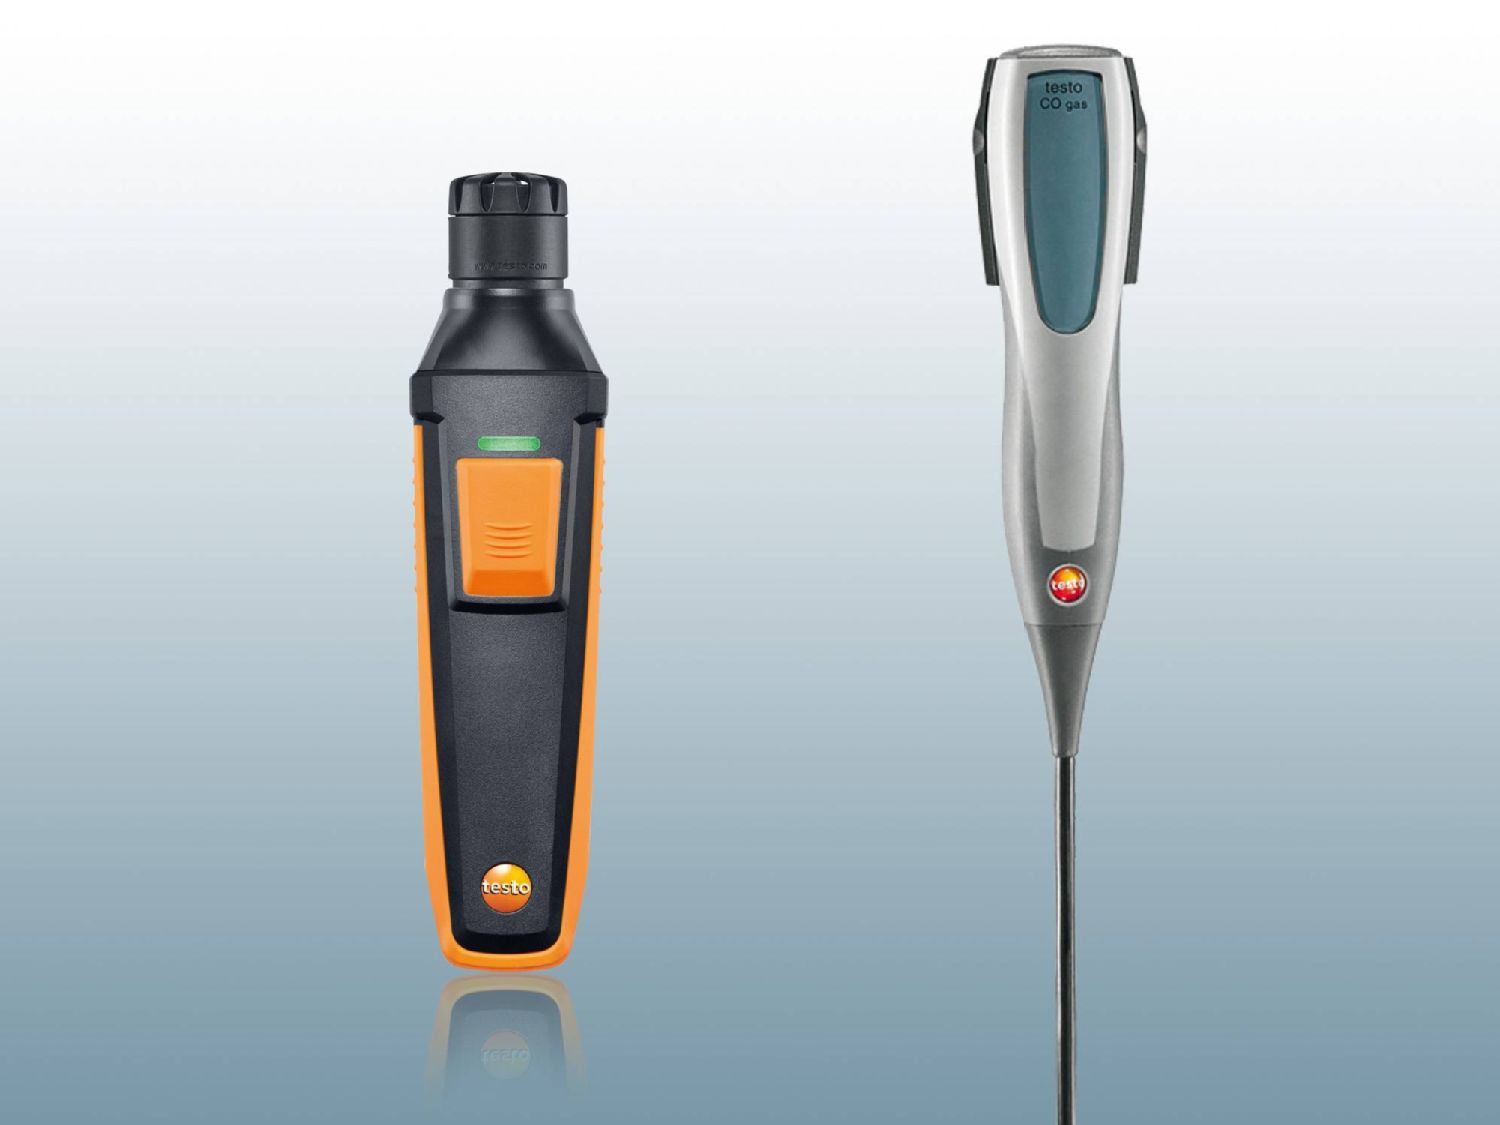 CO meters from Testo